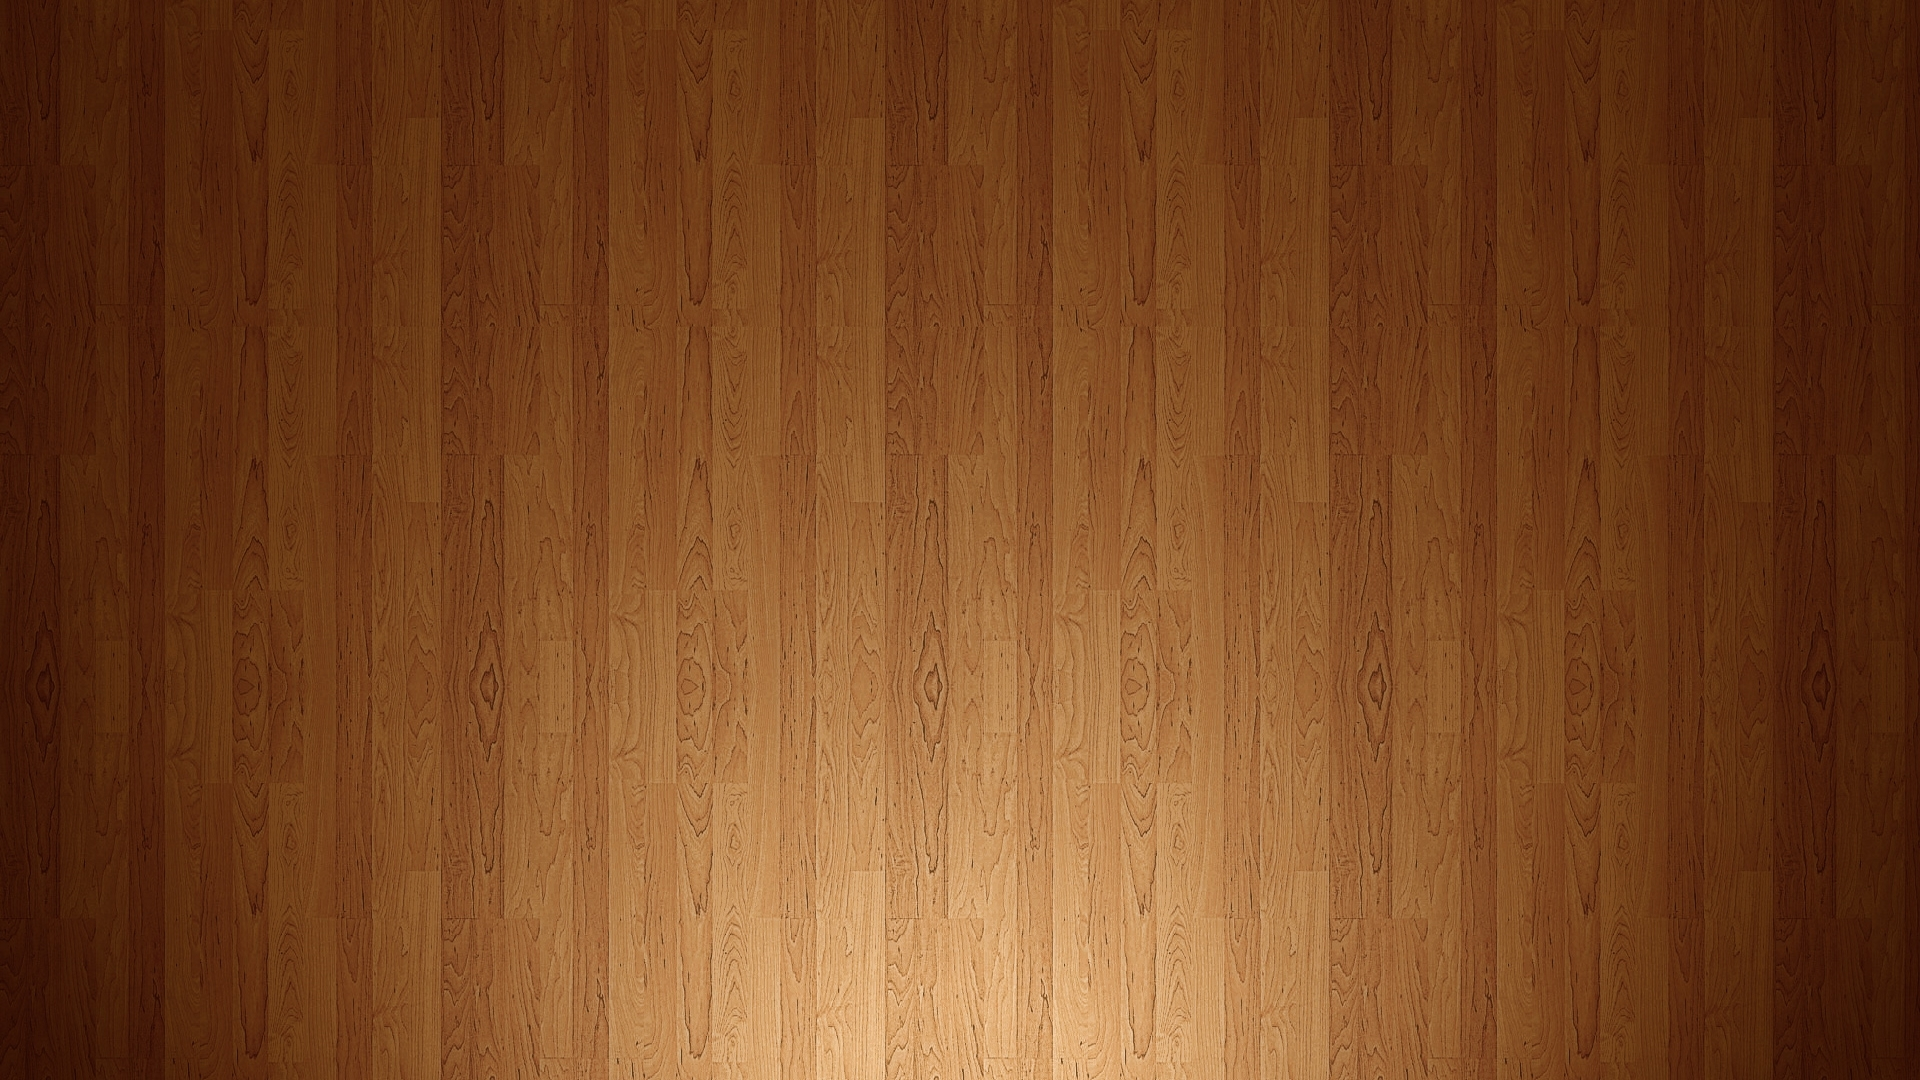 Wood panel wallpaper wallpapersafari for Panel wallpaper